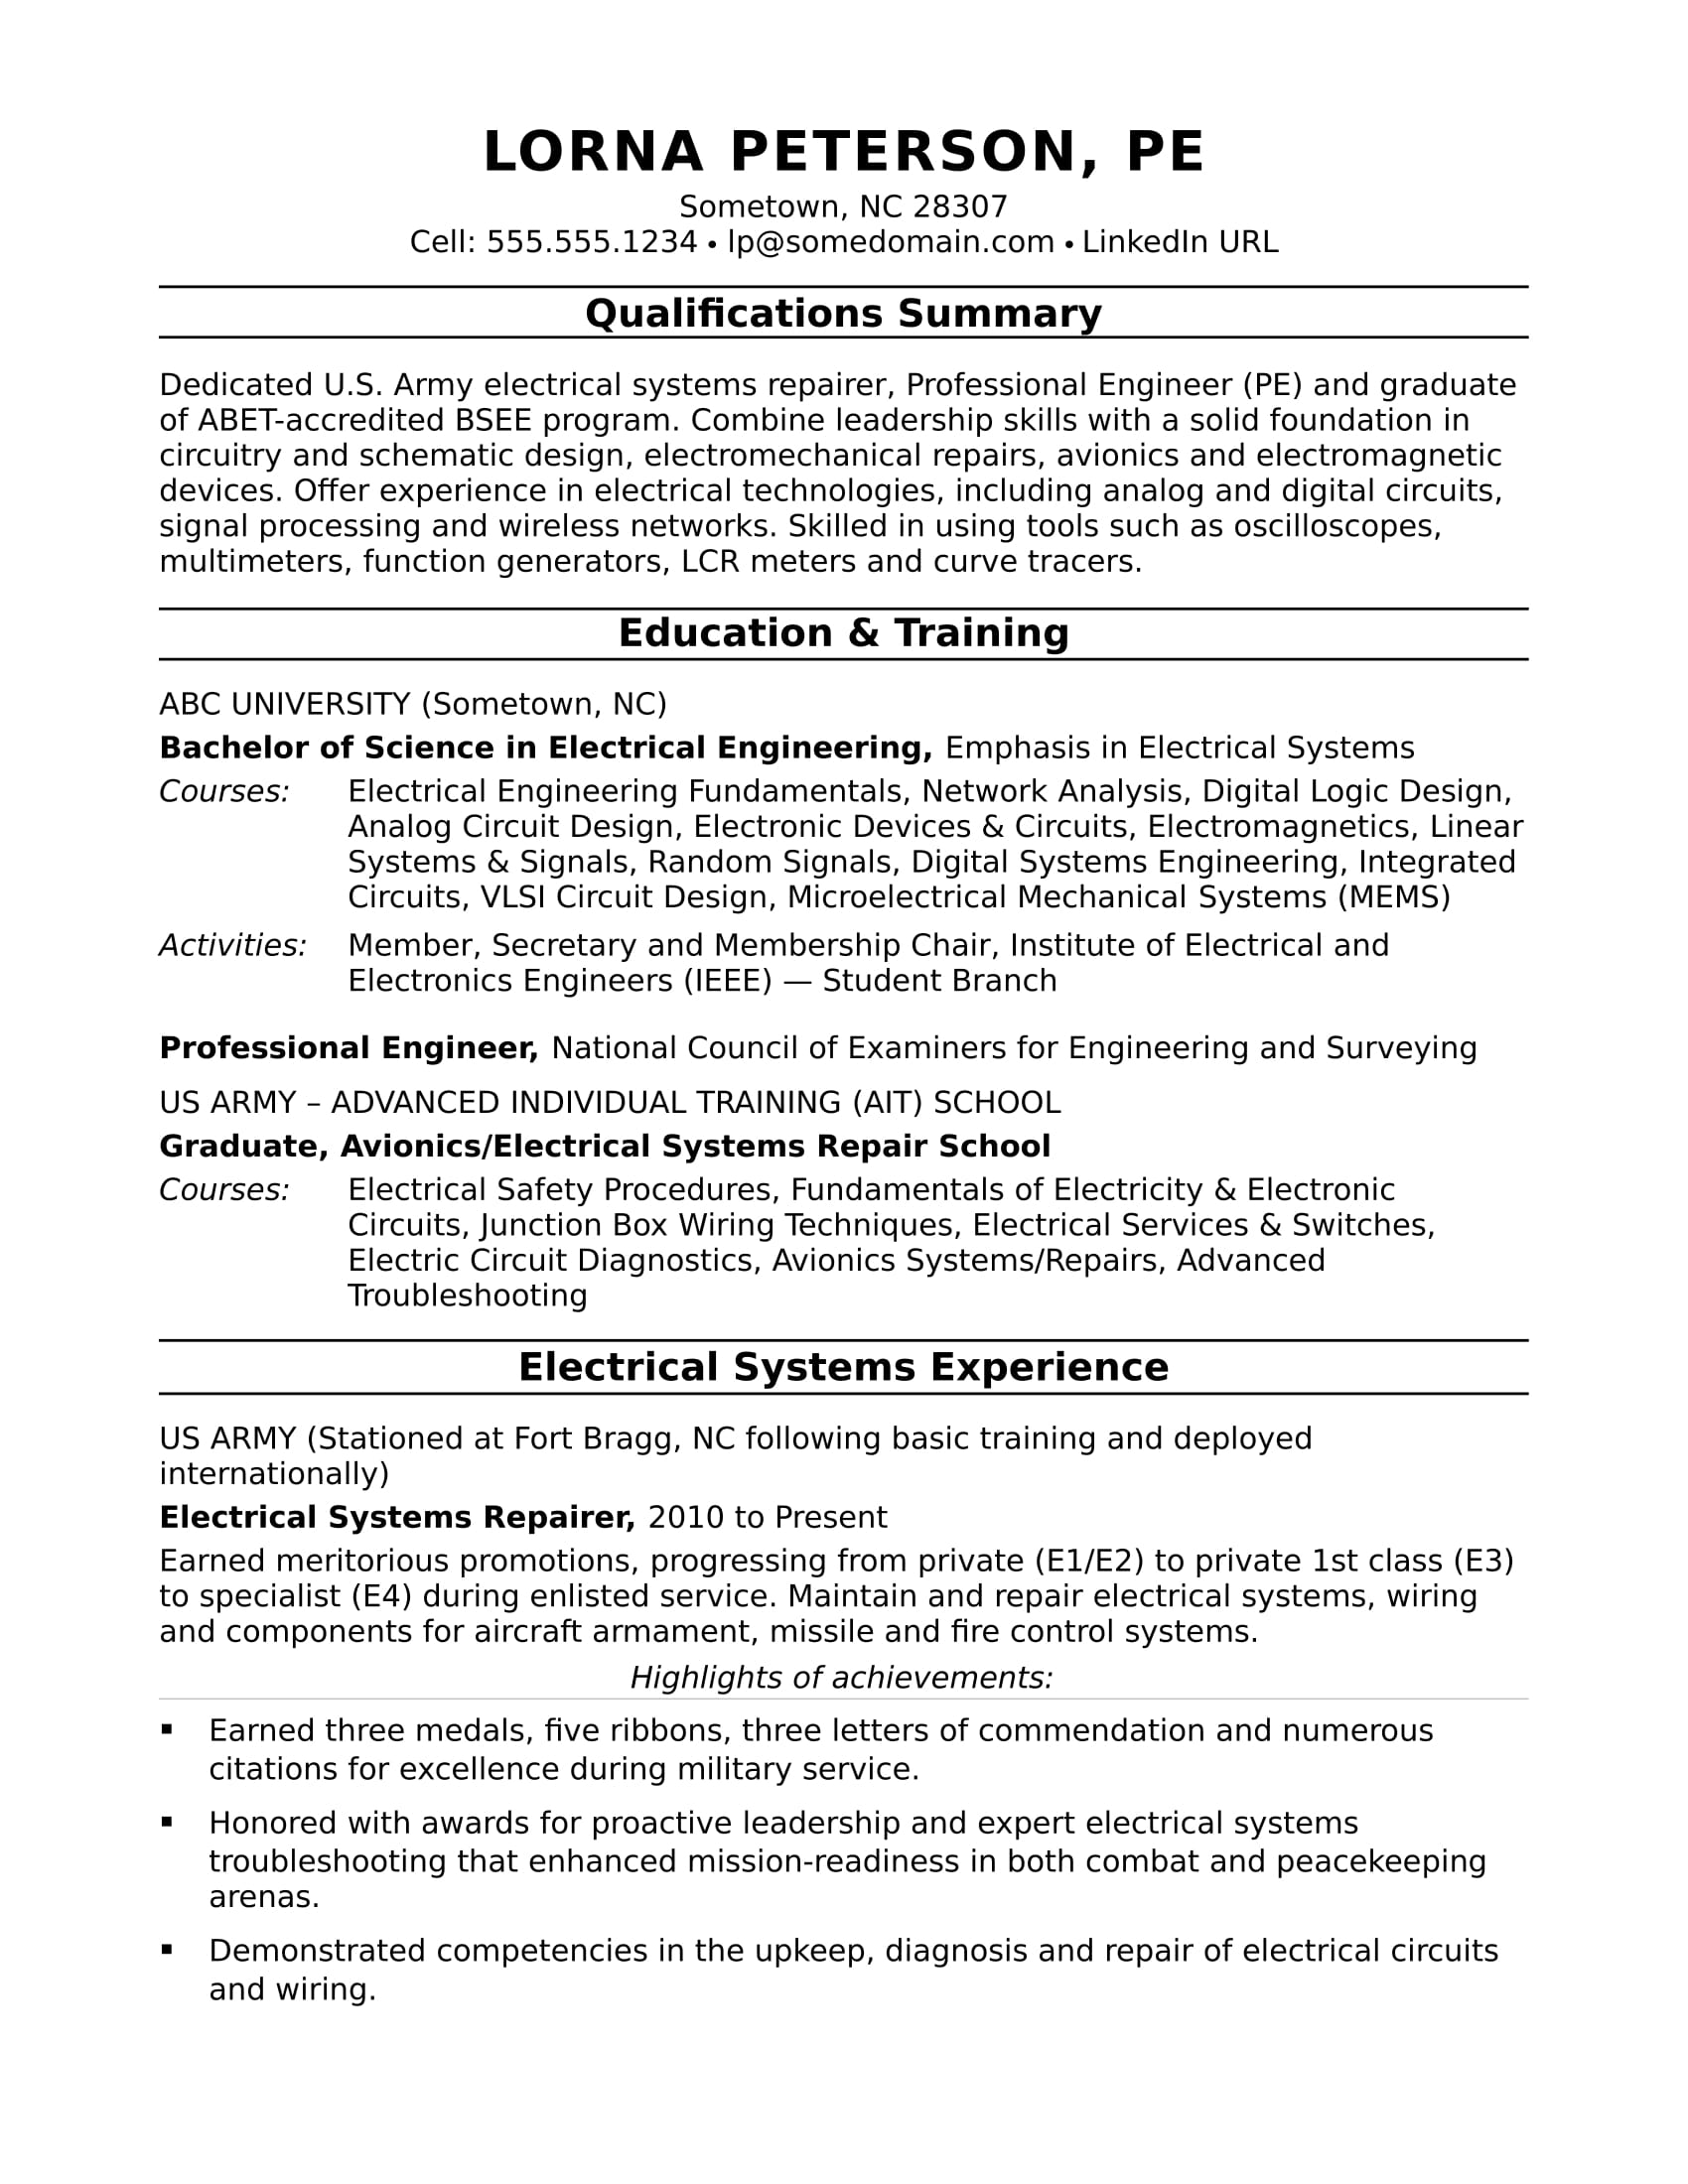 Sample Resume For A Midlevel Electrical Engineer Engineering Schematics